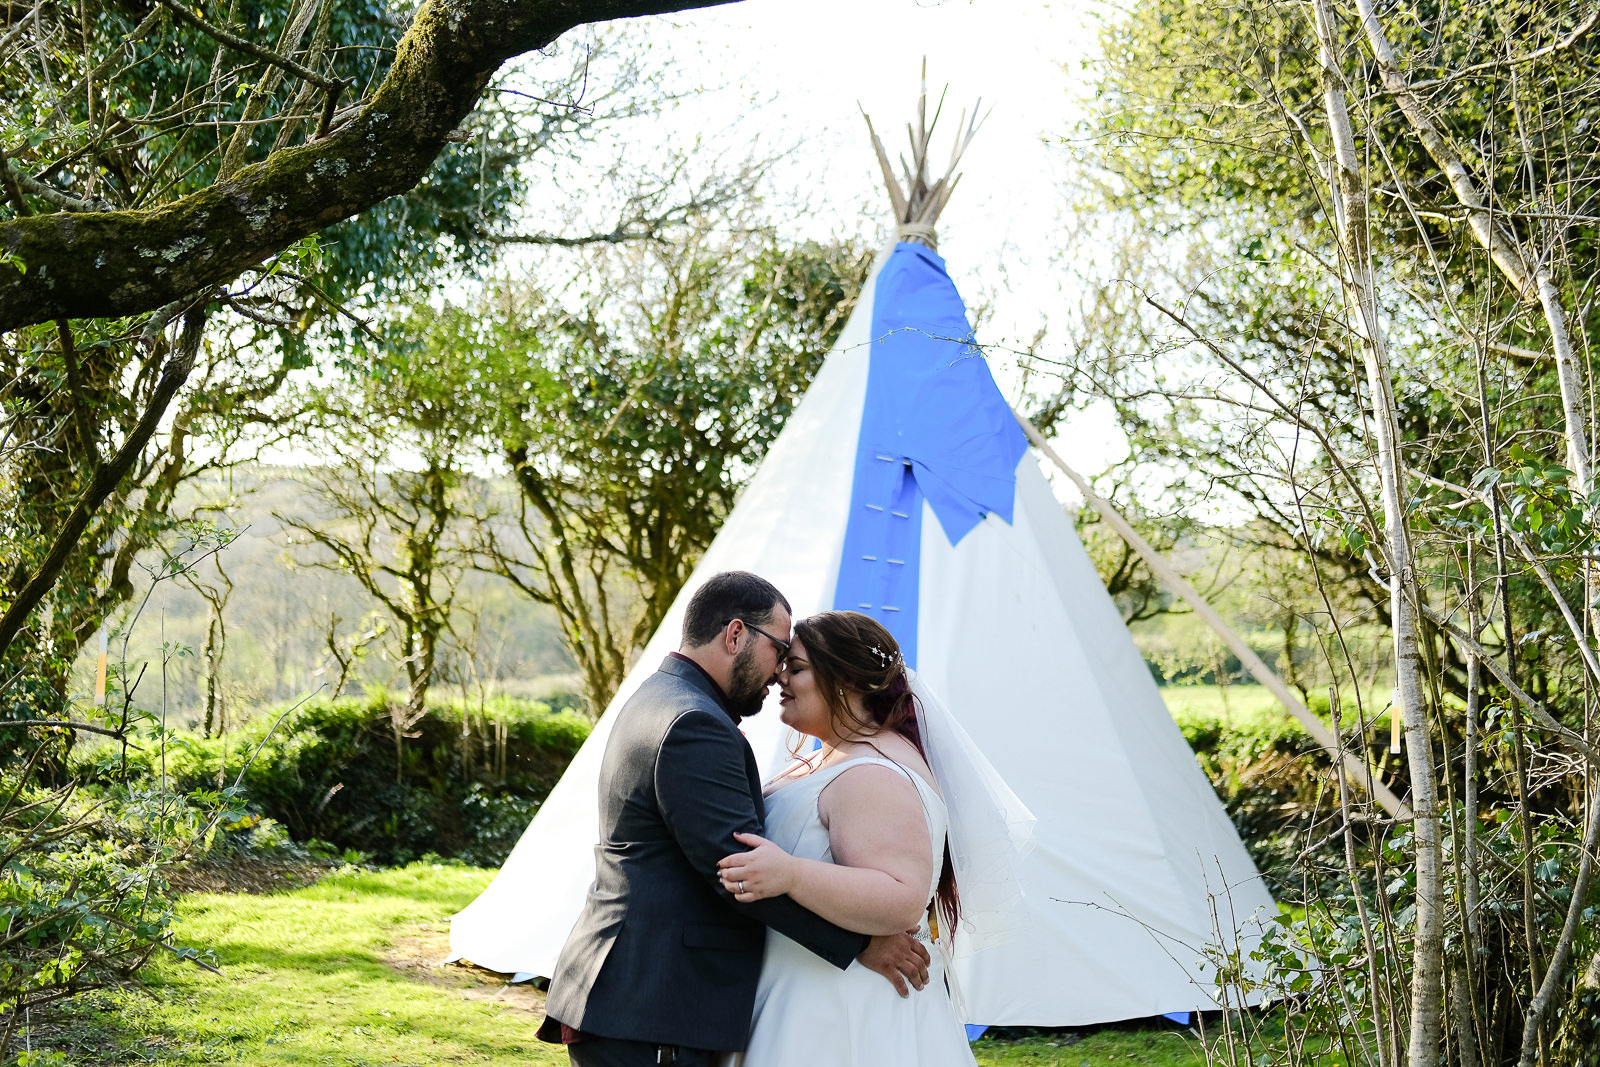 cornish tipi wedding photography 065.jpg